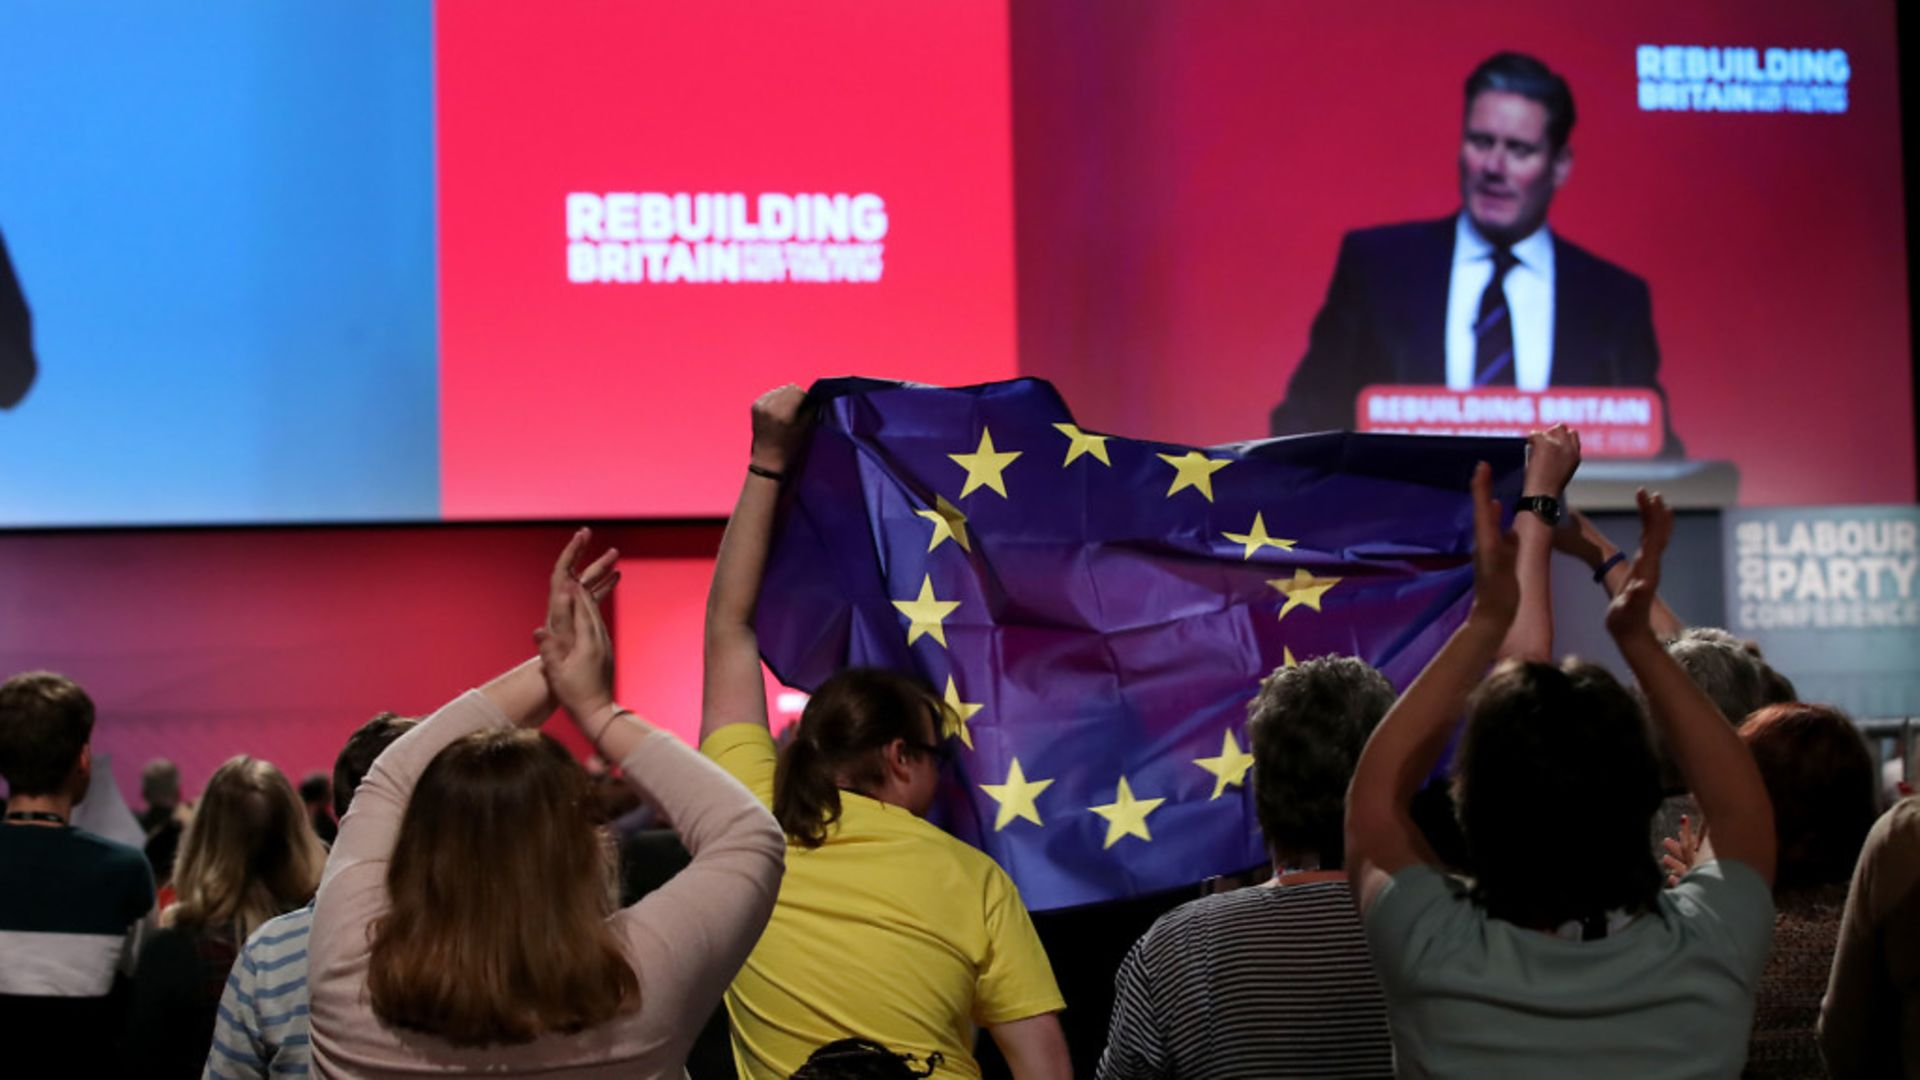 Sir Keir Starmer opens a debate on Brexit during the Labour Party's annual conference. - Credit: PA